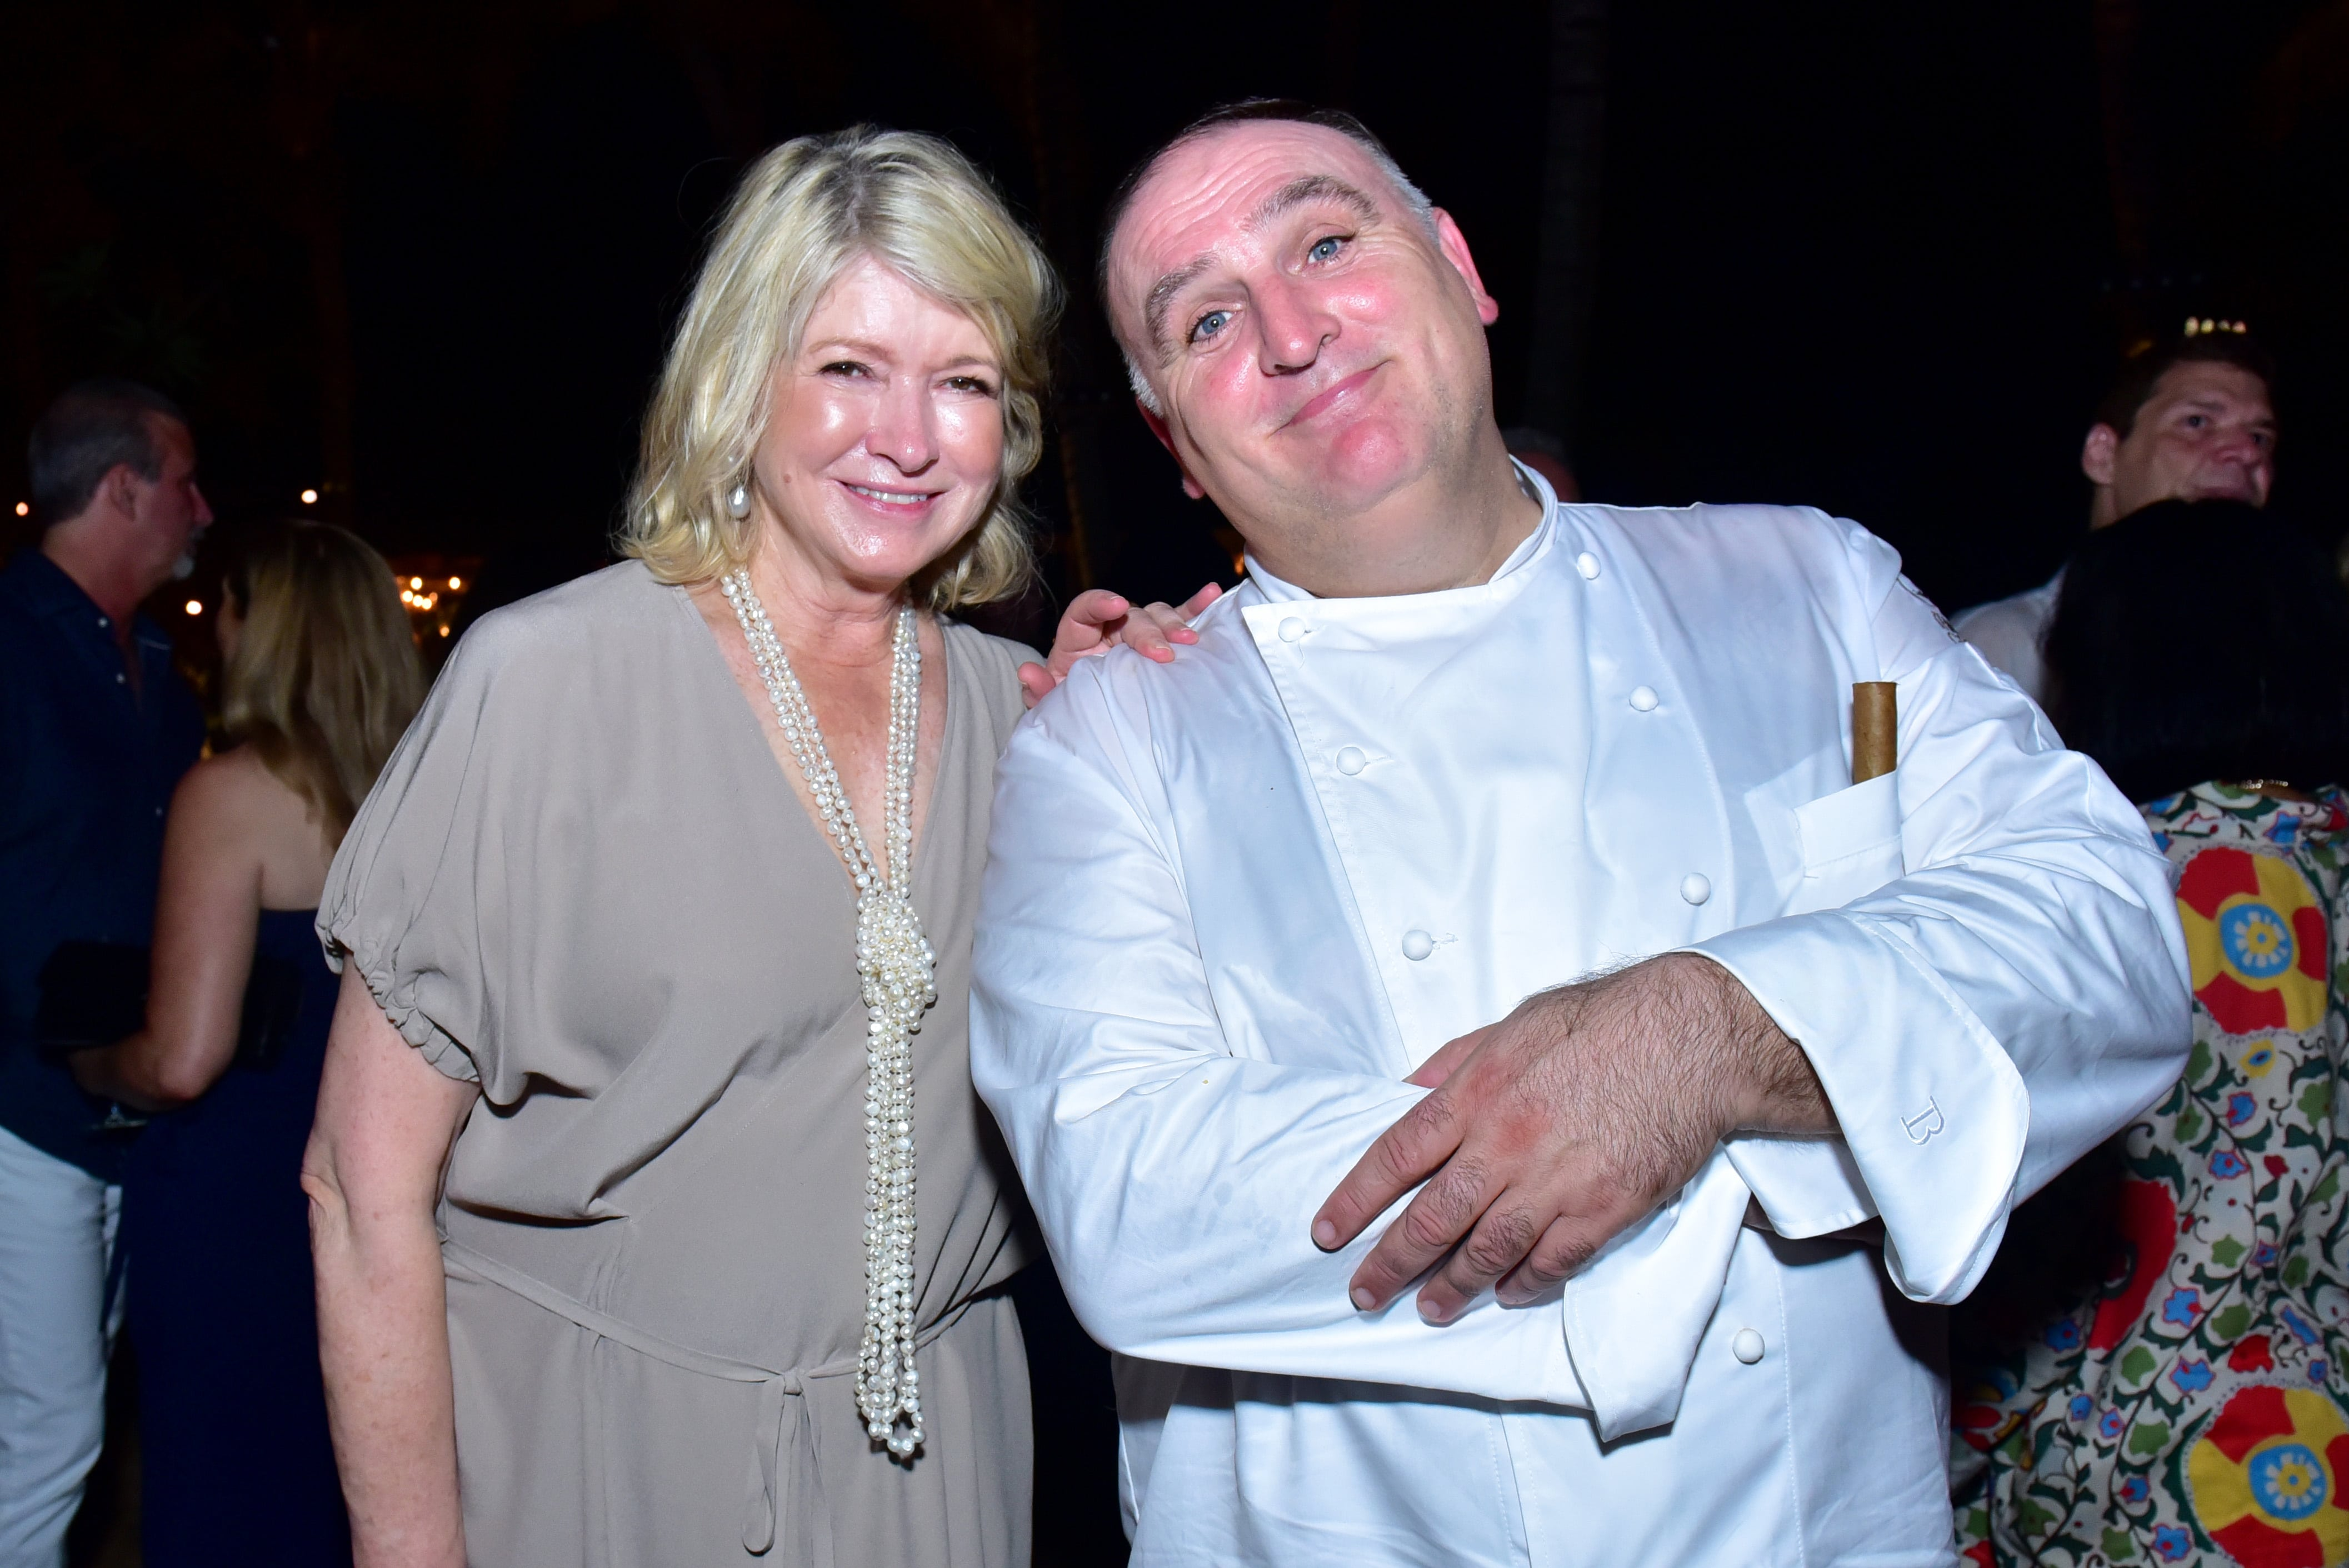 Martha_Stewart_with_Jose_Andres